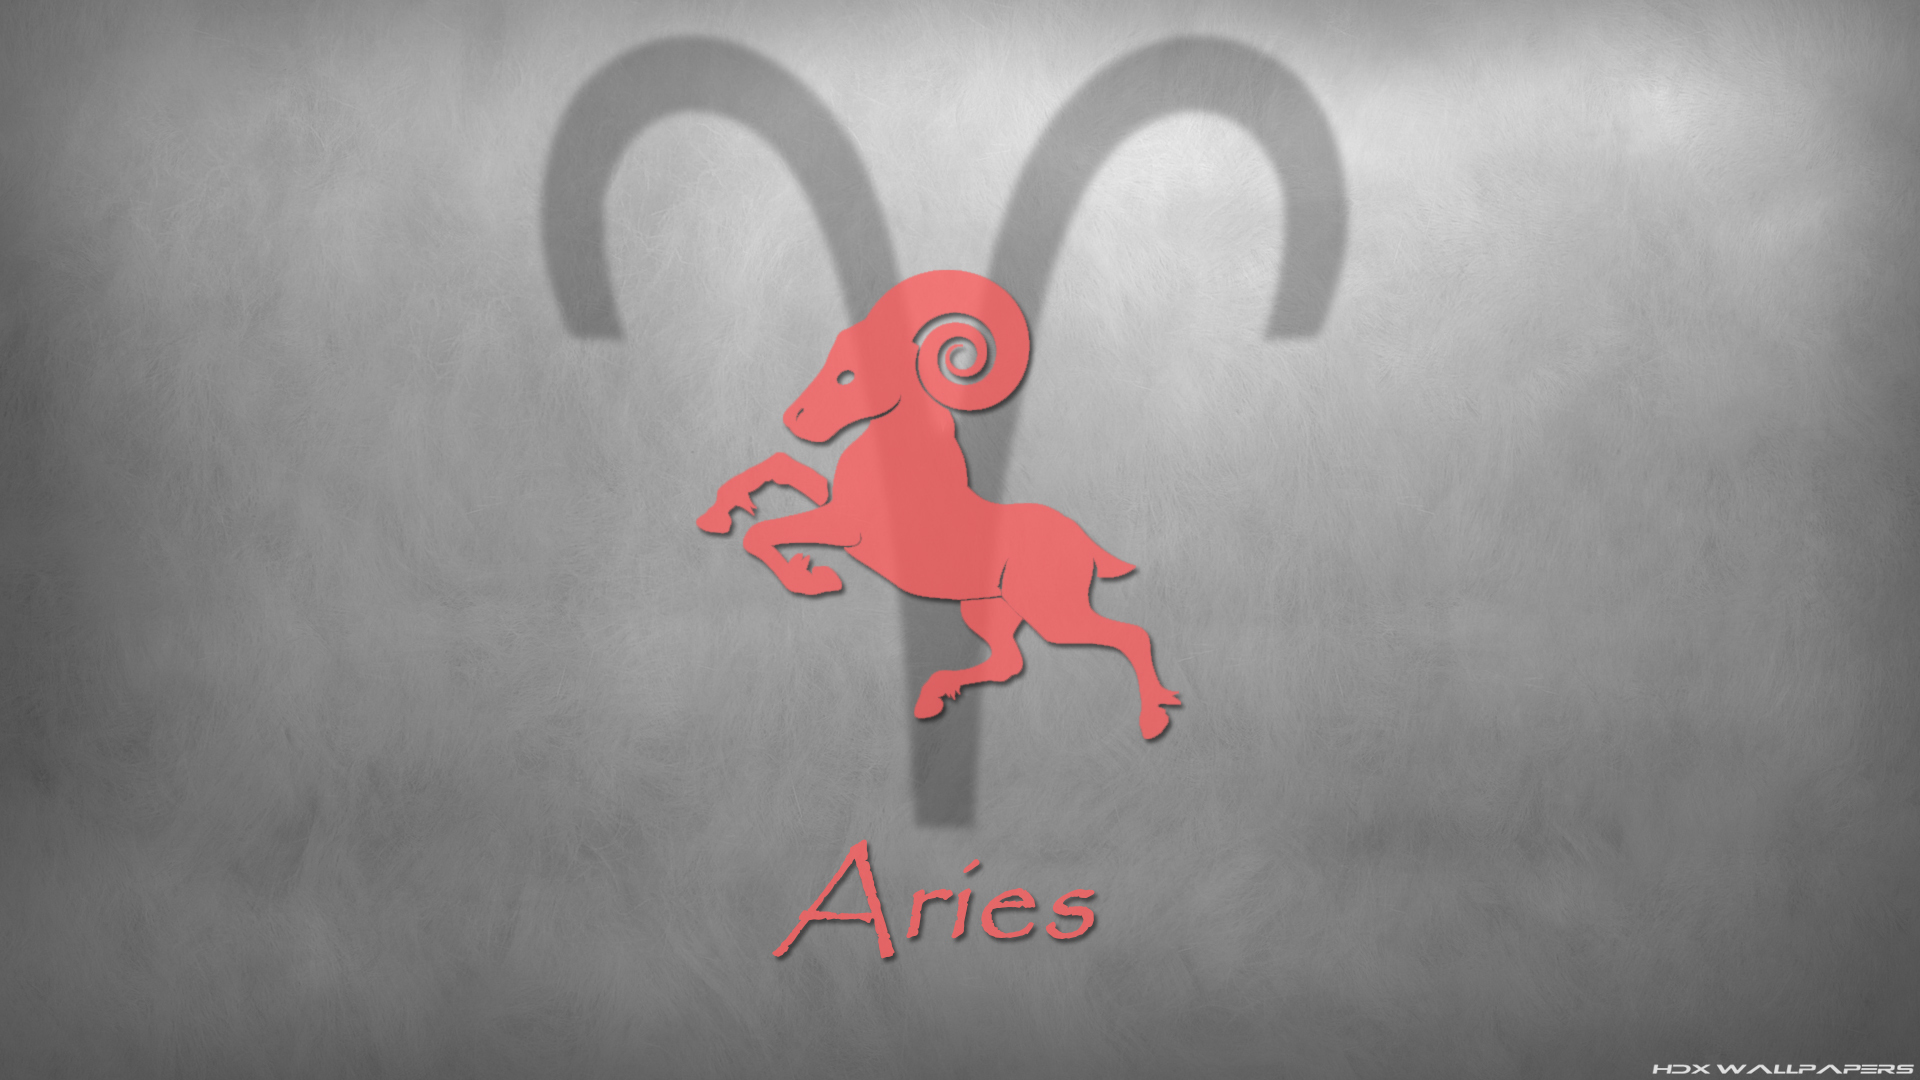 Aries sign on a gray background wallpapers and images   wallpapers 1920x1080